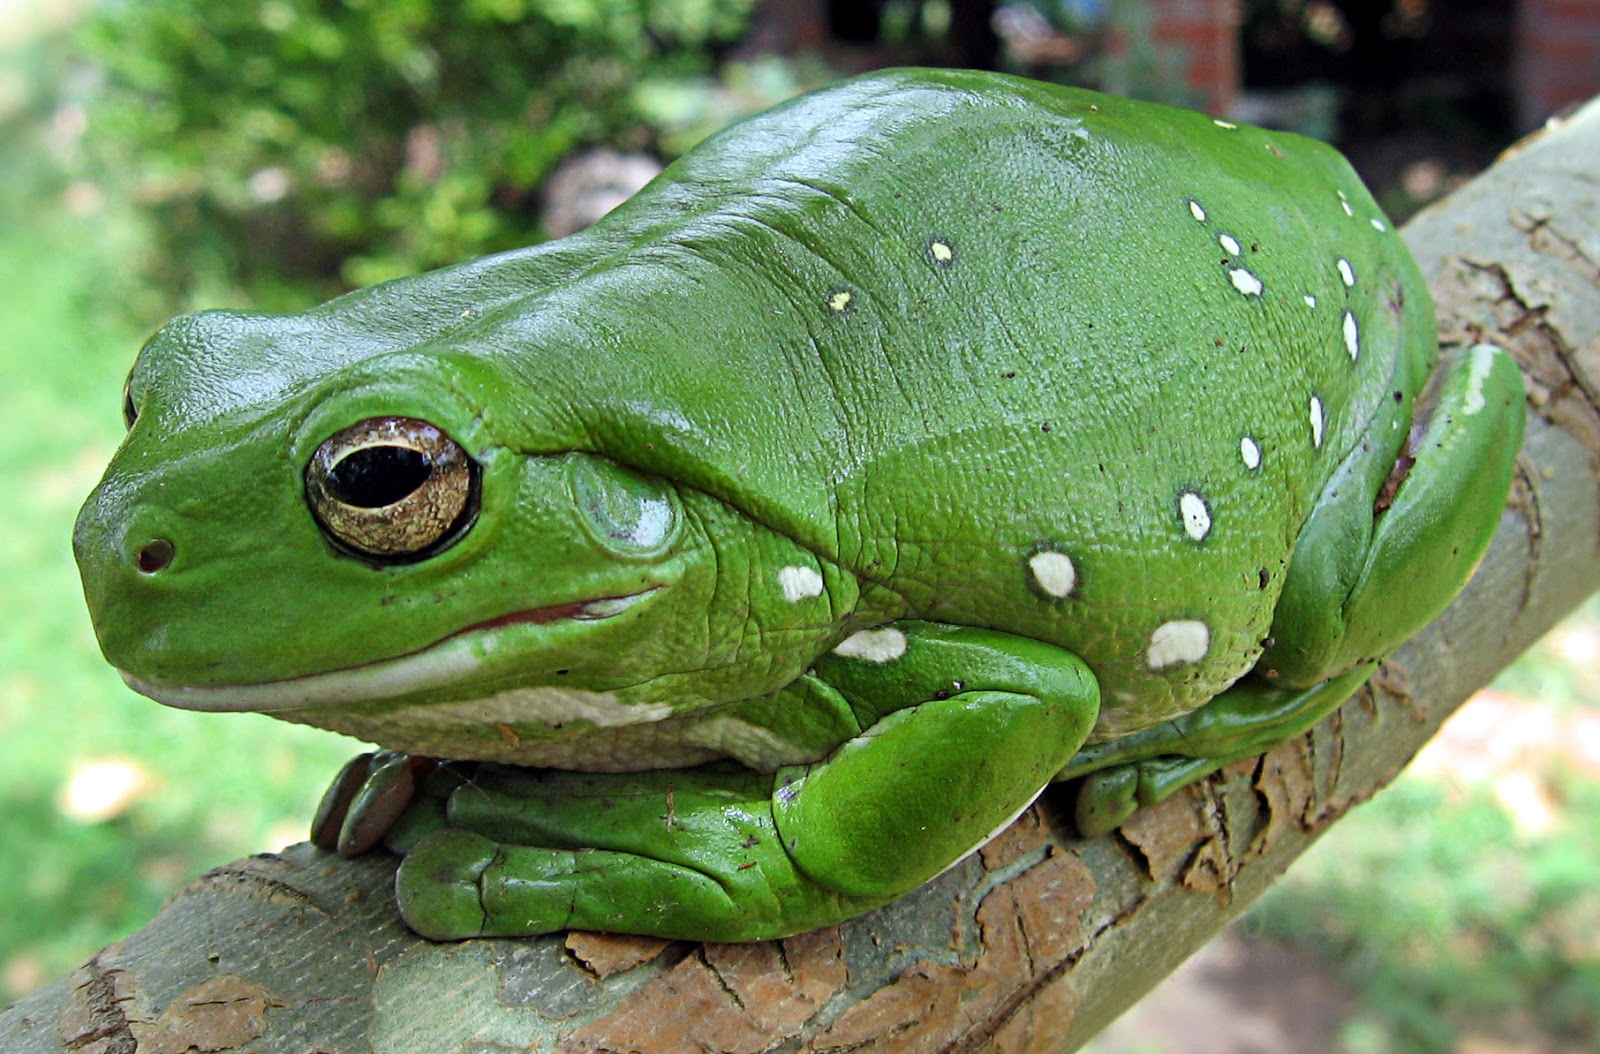 Amphibians: Magnificent tree frog